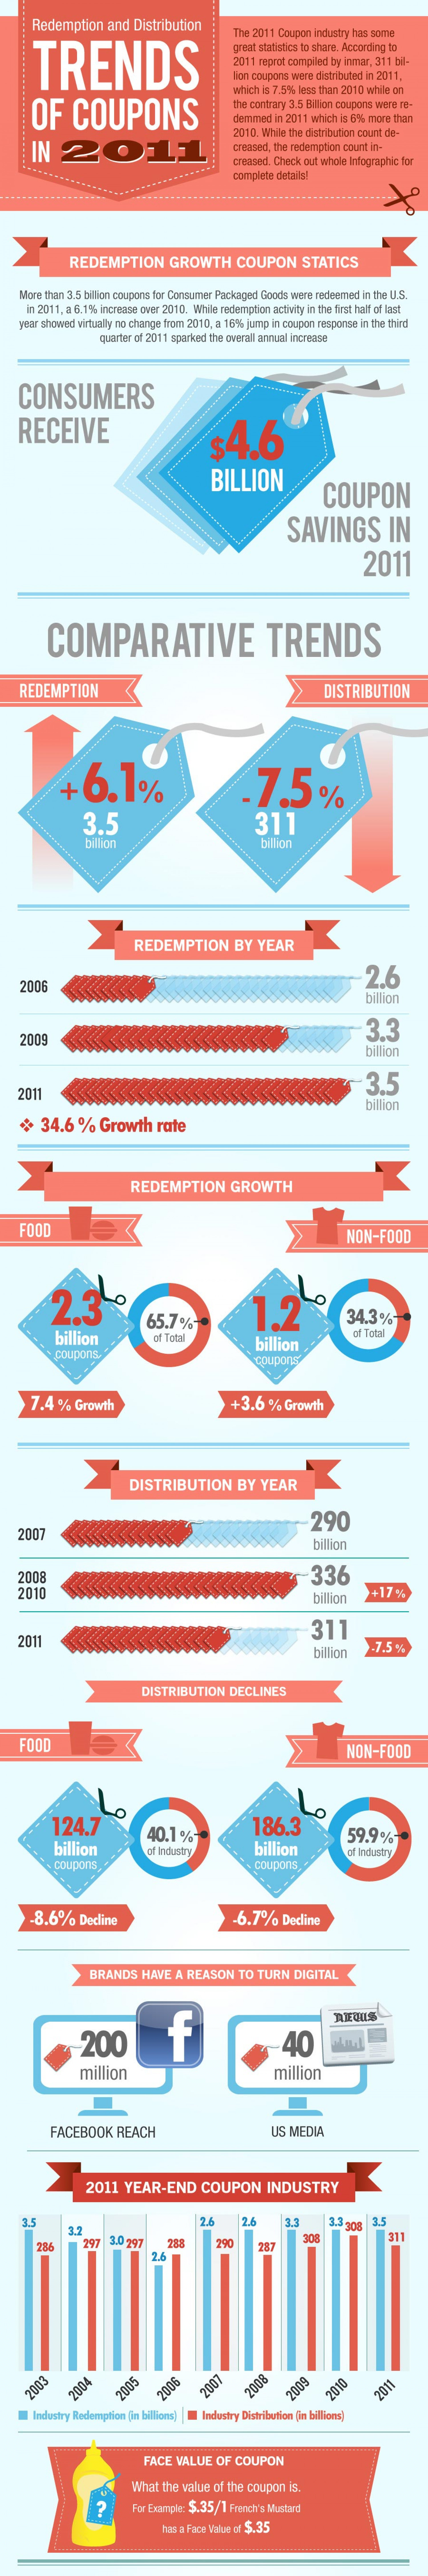 Trends of Coupons in 2011 Infographic